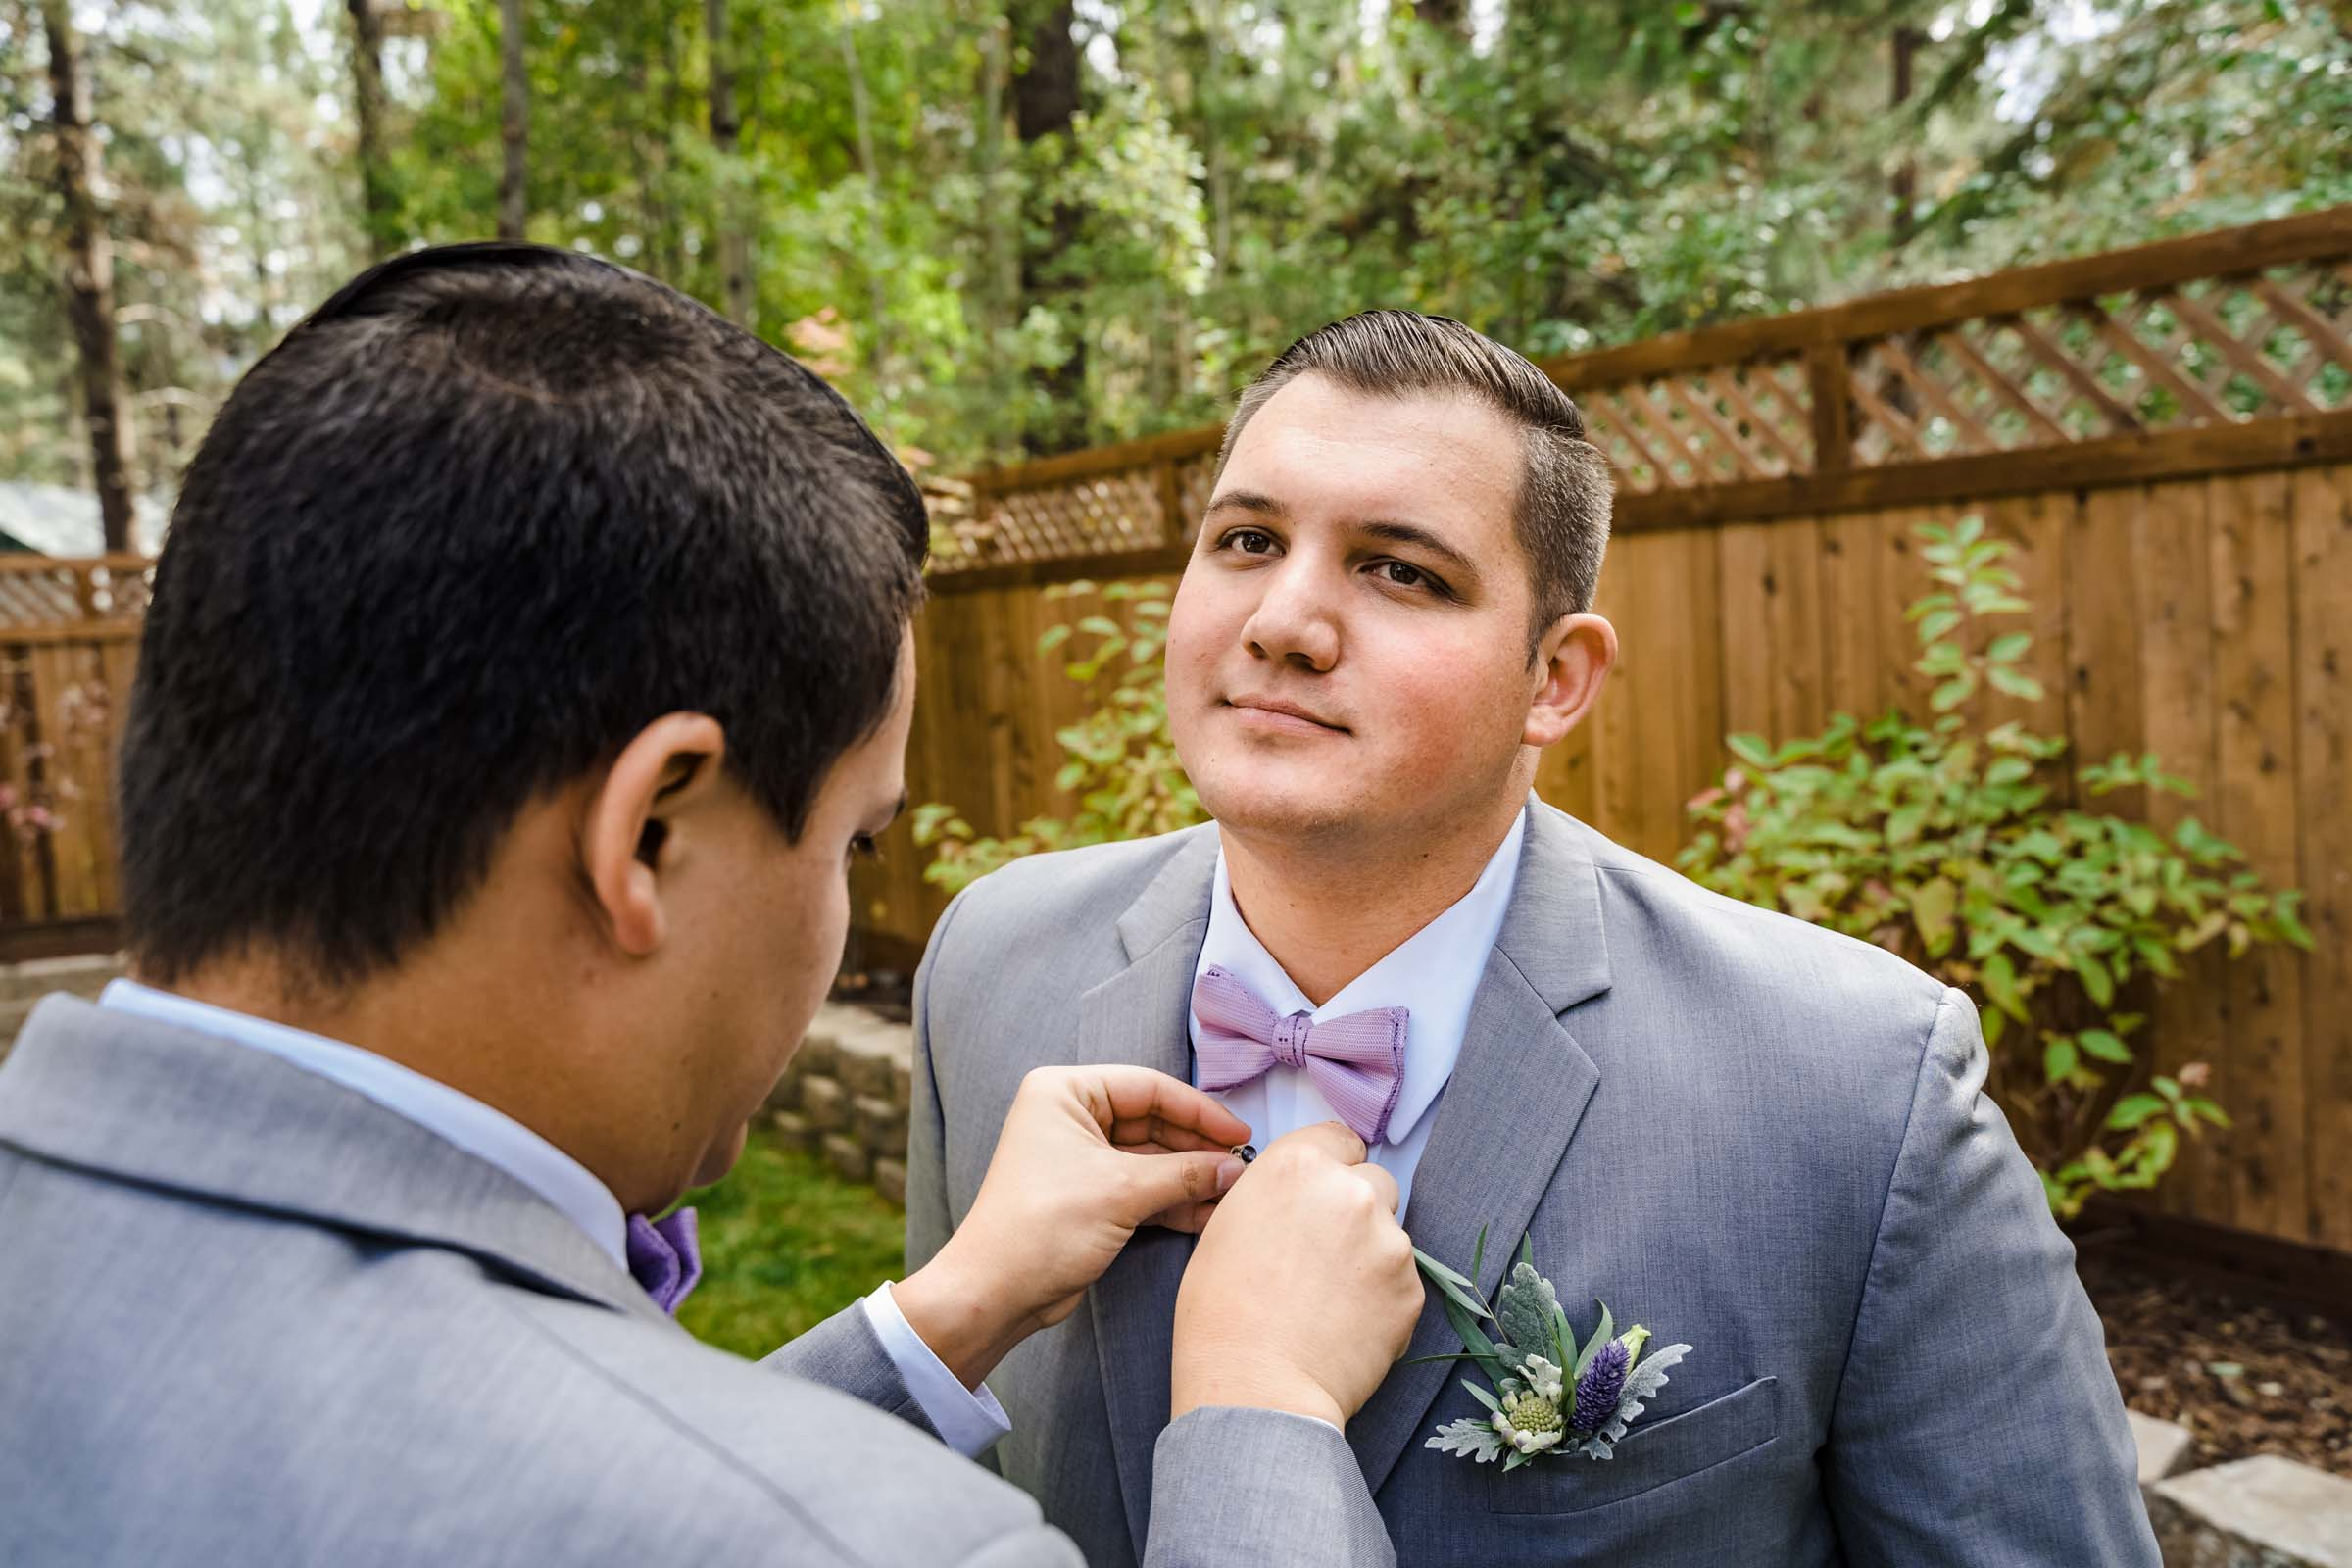 Groom getting ready for small intimate wedding in South Lake Tahoe